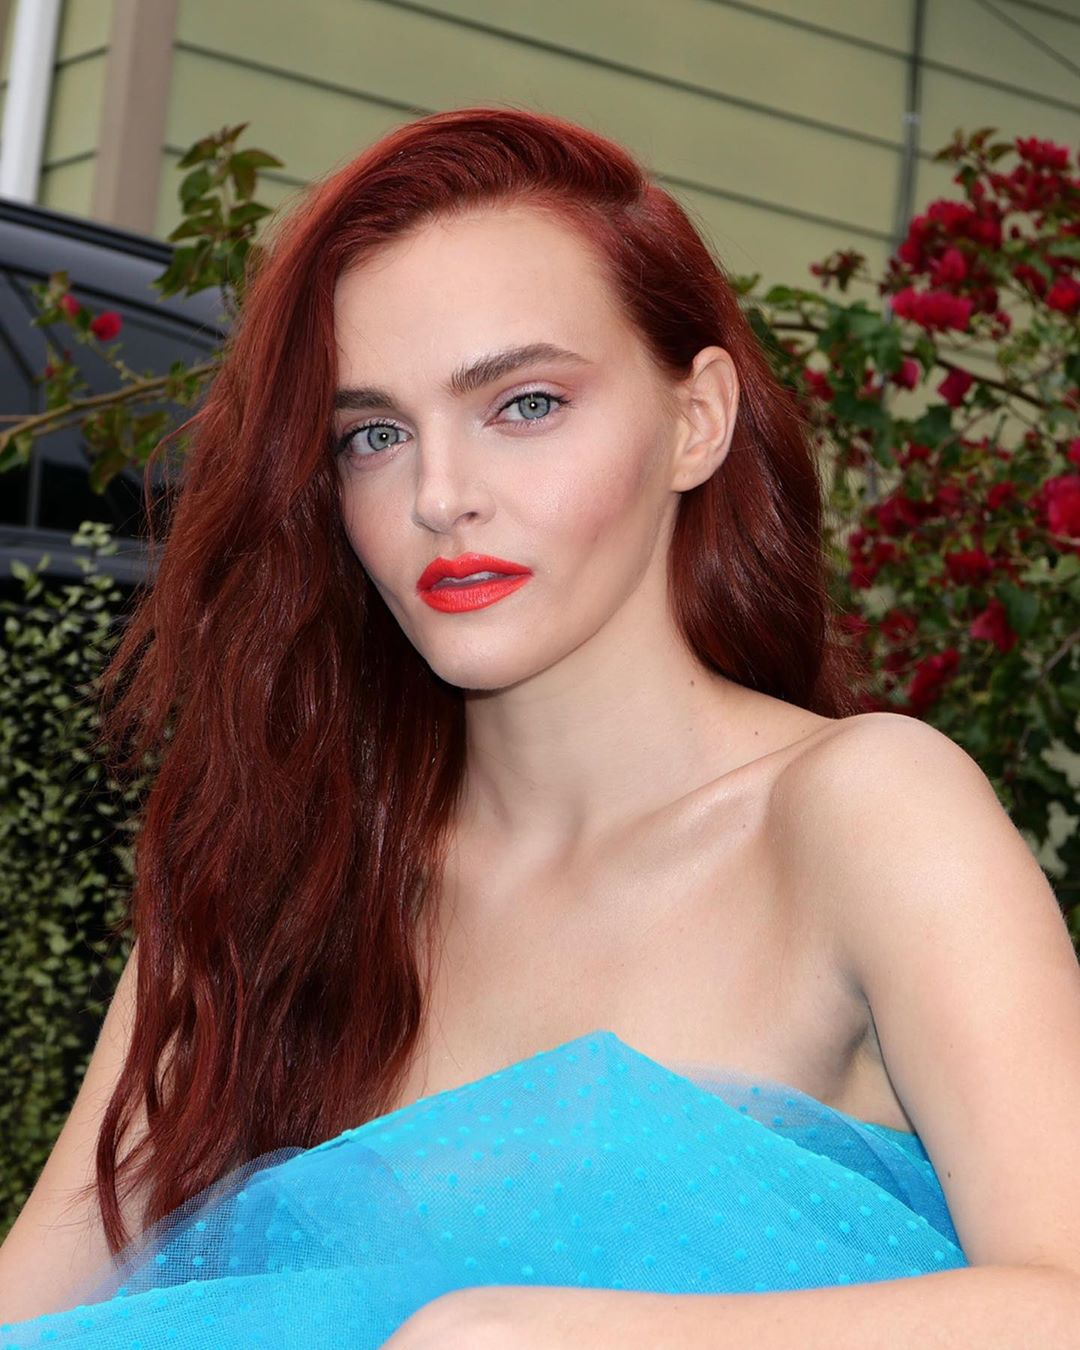 SAG Awards 2020 beauty madeline brewer